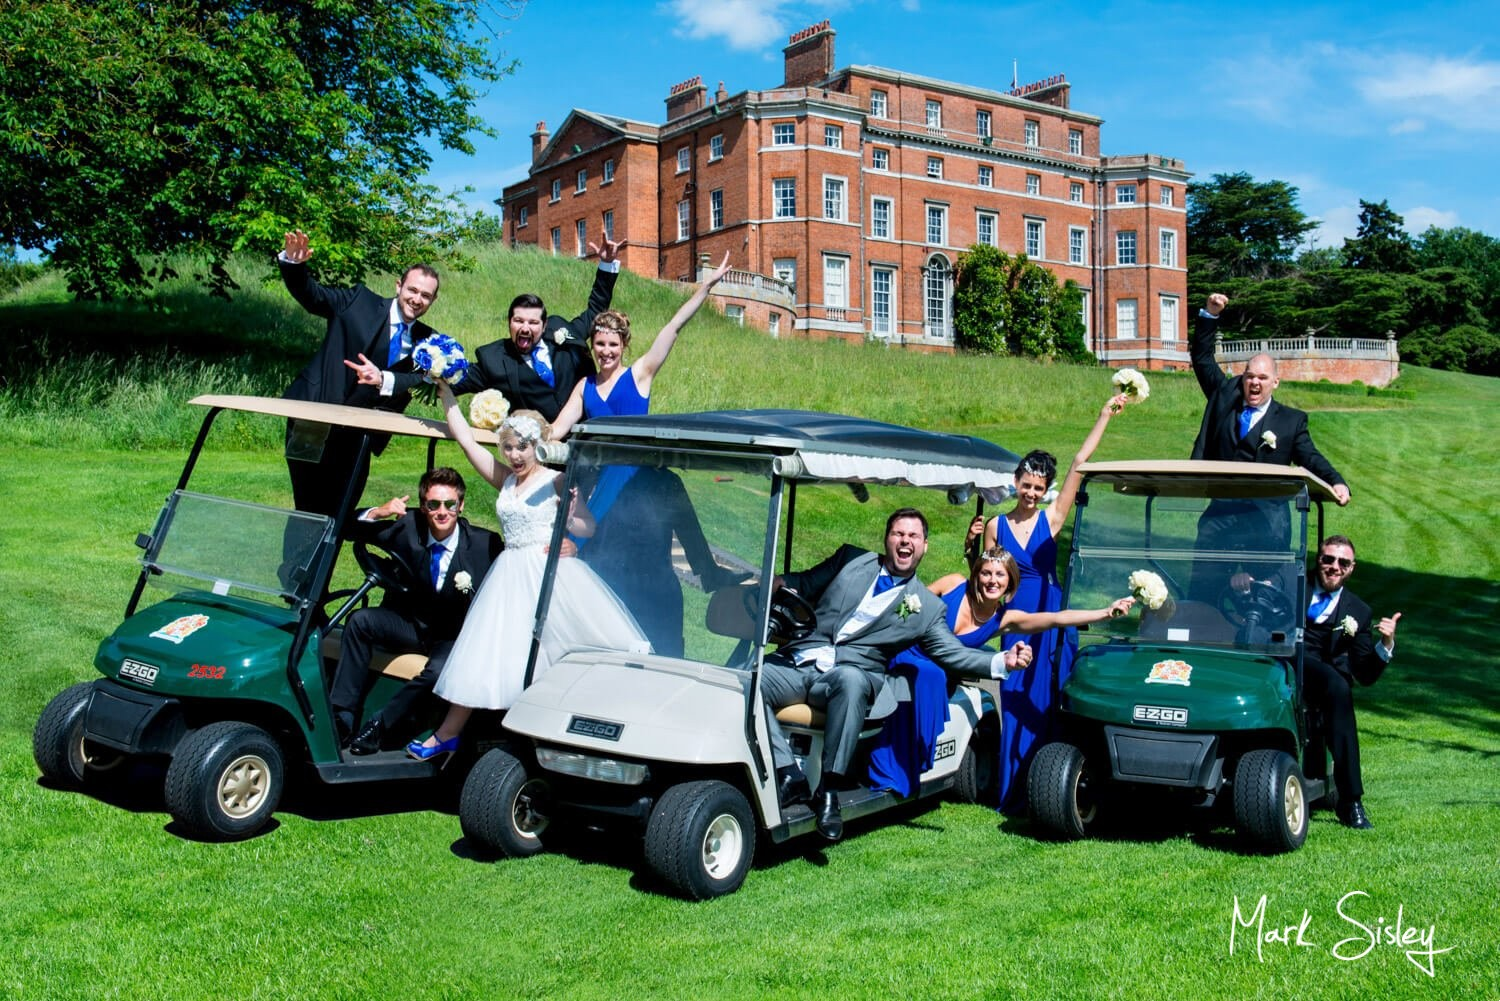 Brocket Hall buggies wedding photography in front of the main house